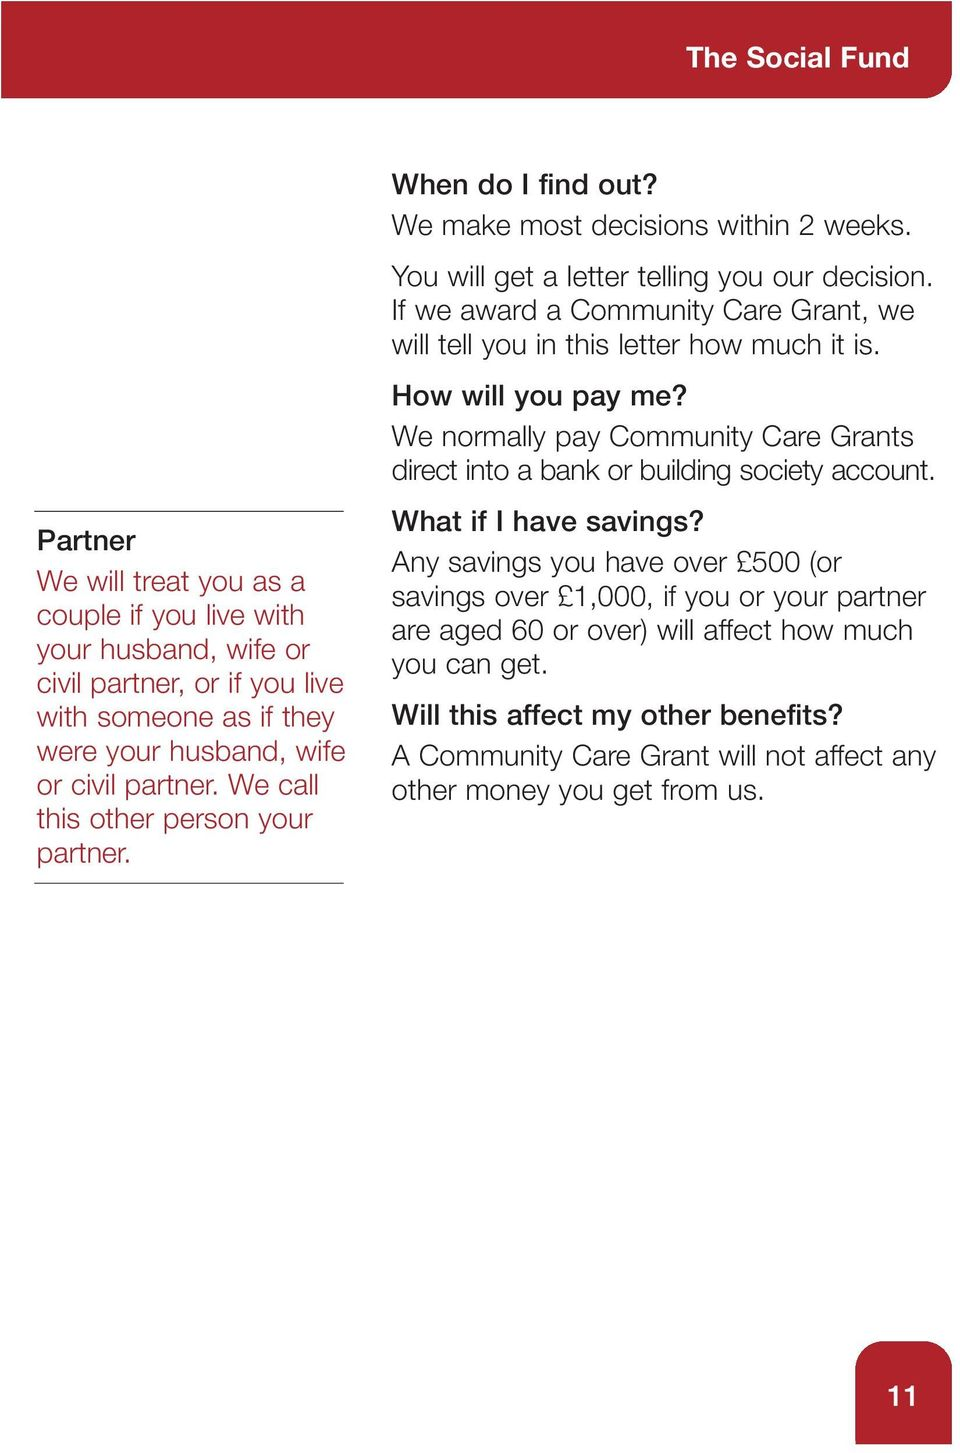 If we award a Community Care Grant, we will tell you in this letter how much it is. How will you pay me? We normally pay Community Care Grants direct into a bank or building society account.